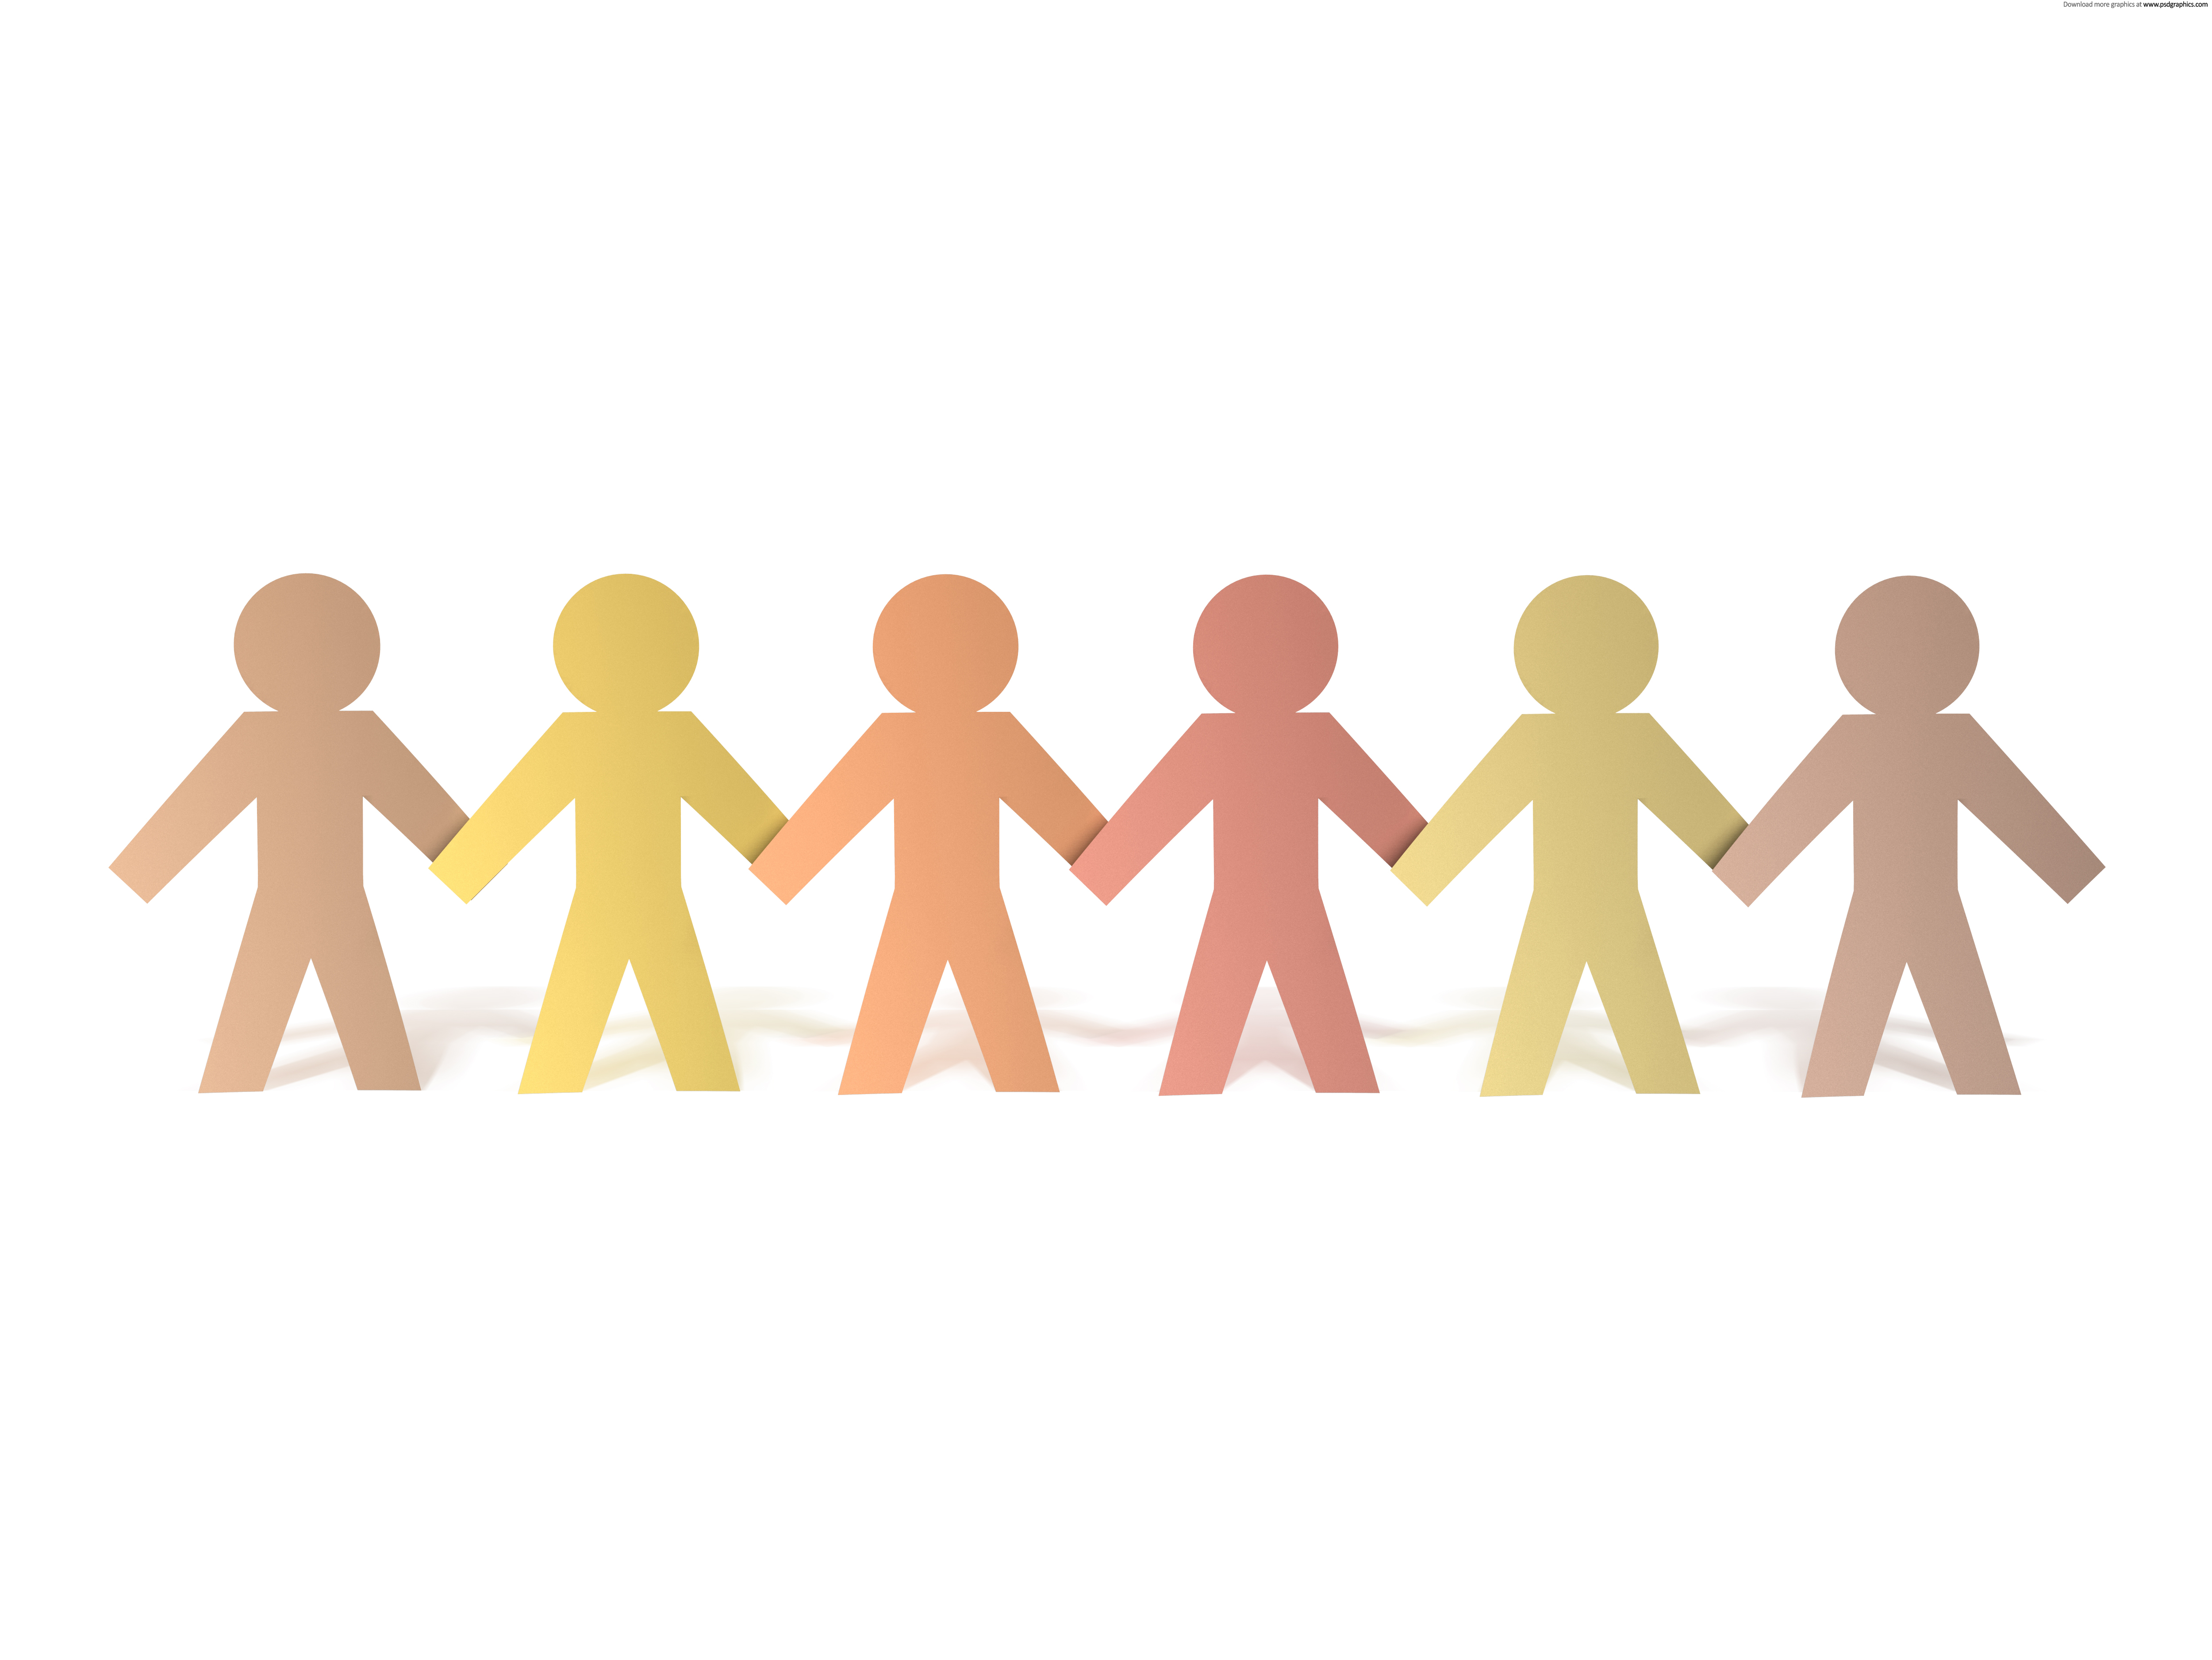 Paper People Chain Png - Paper people chain background | PSDGraphics